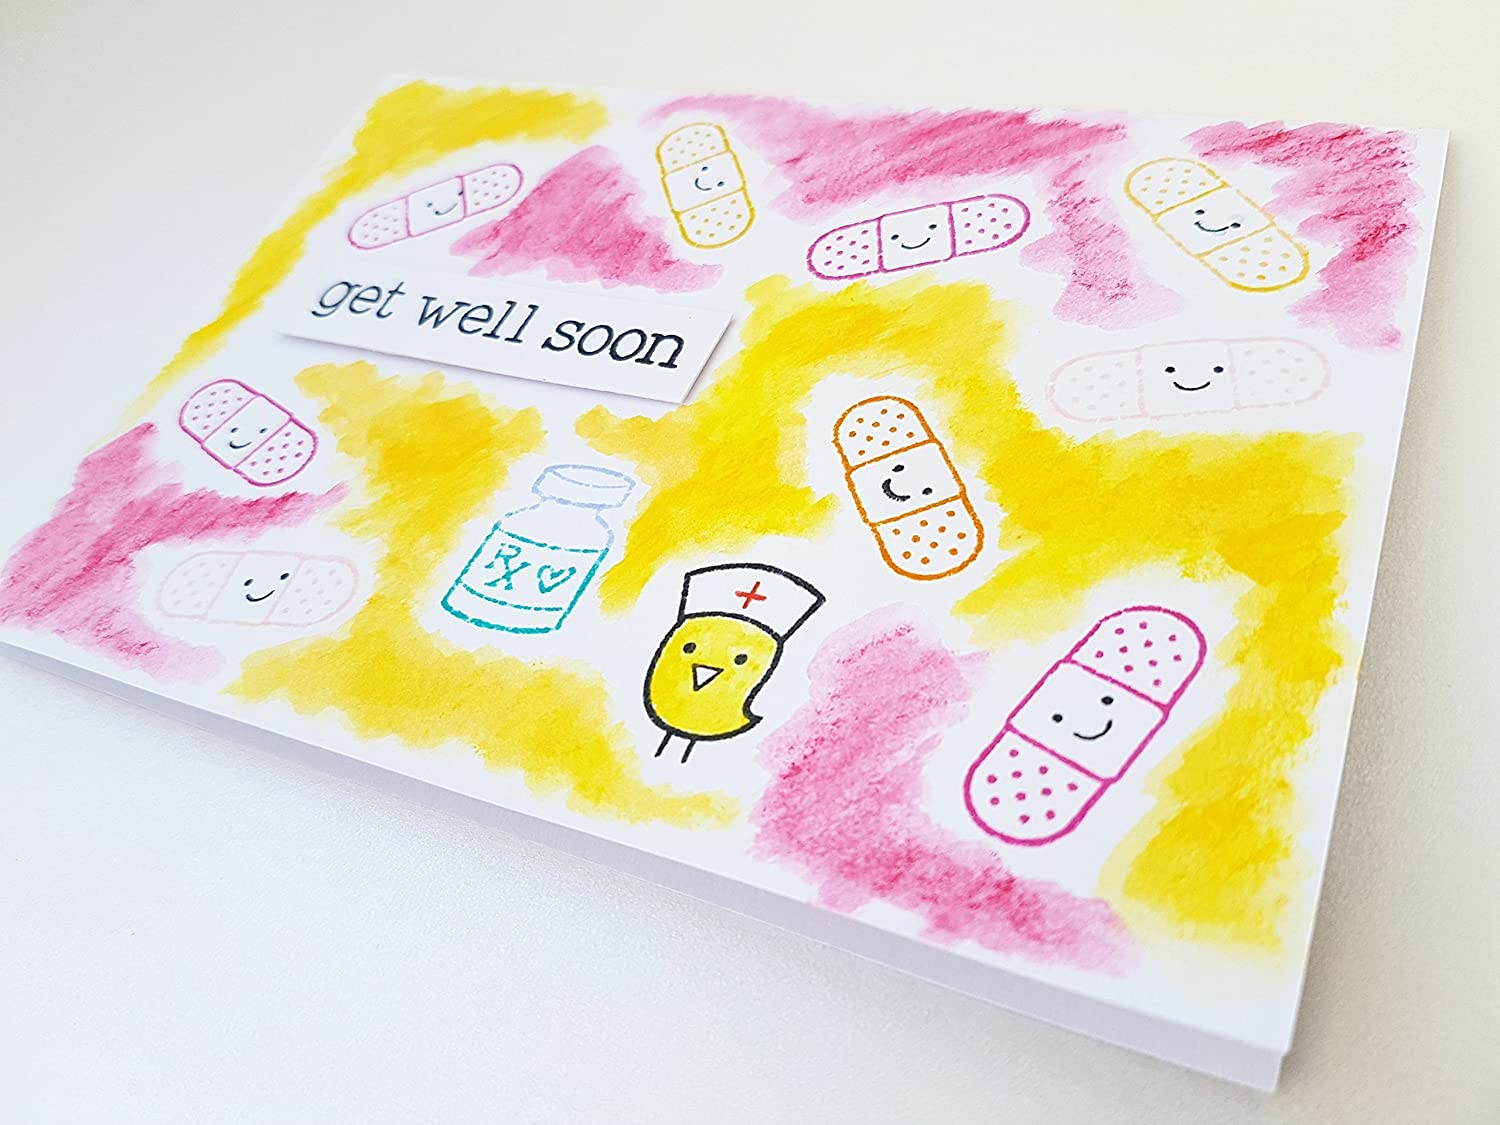 paper cards handmade gift scrap scrapbook cool girl boy friend pink orange yellow color colorful gifts for her, funny greeting card thinking of you get well soon card